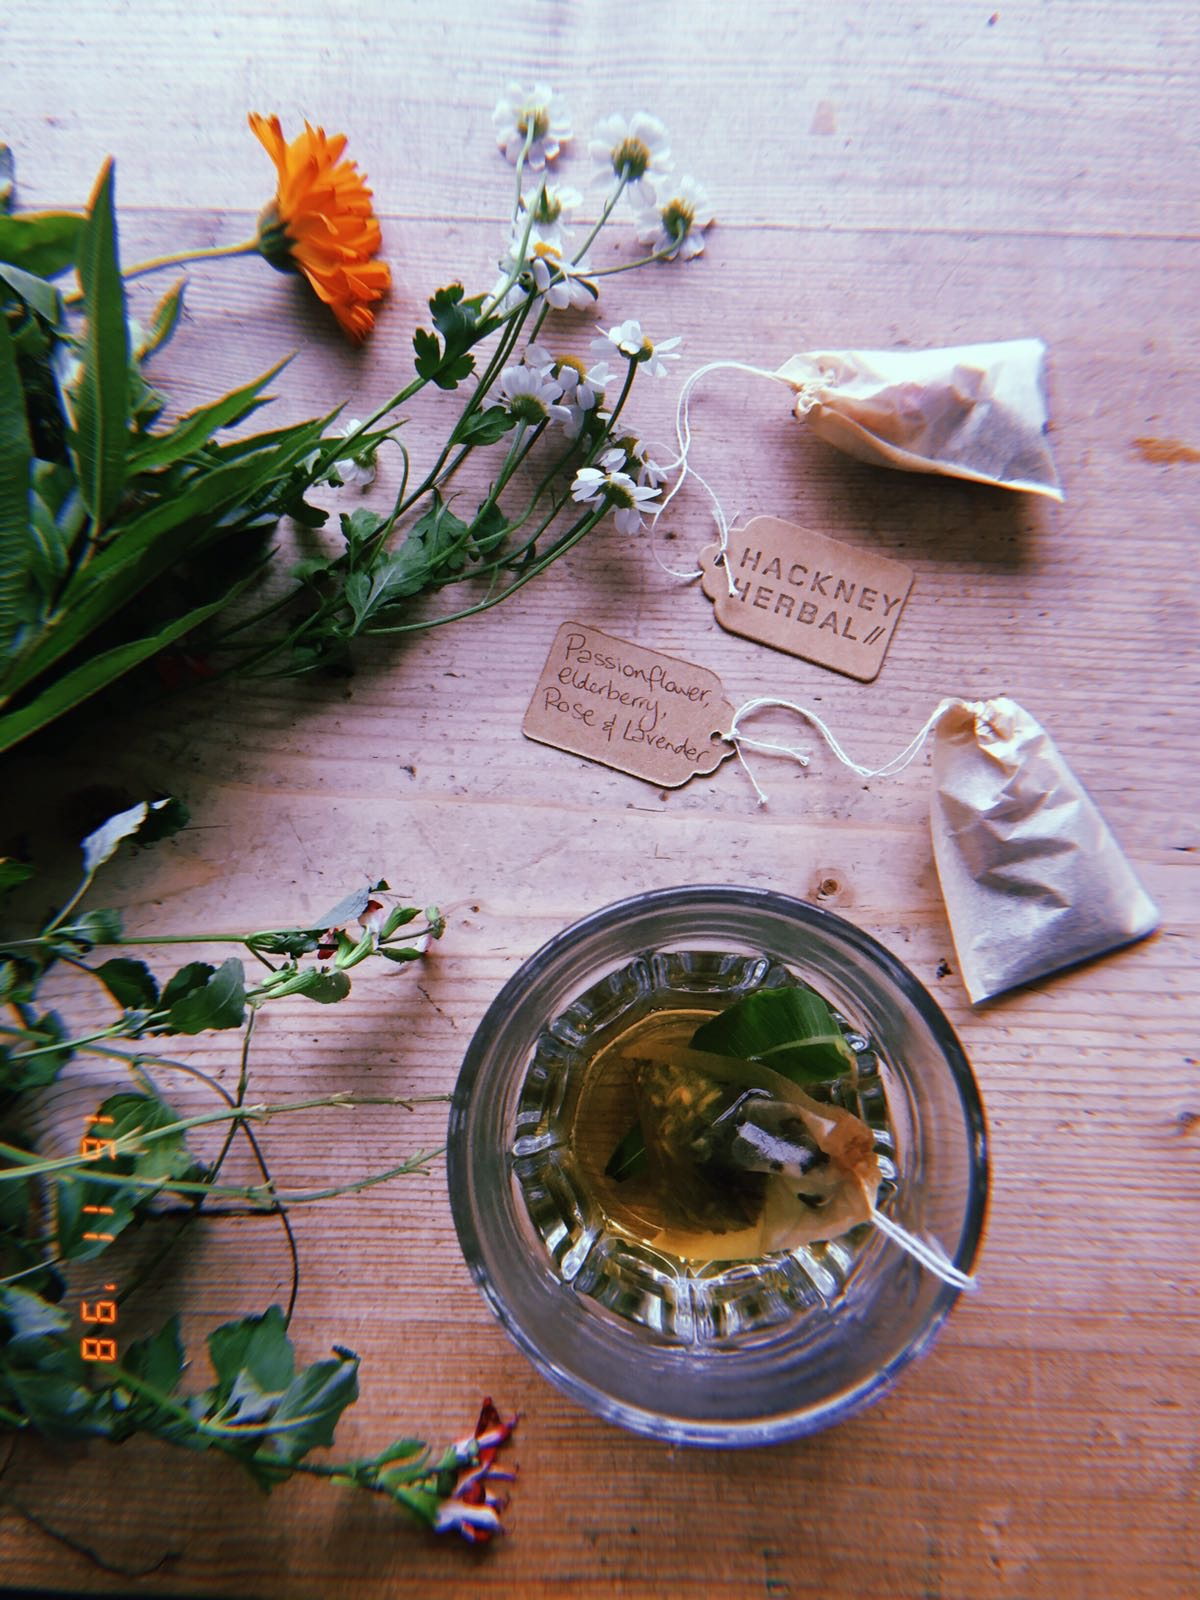 Hackney Herbal | Herbal Tea + Tea bags.jpg